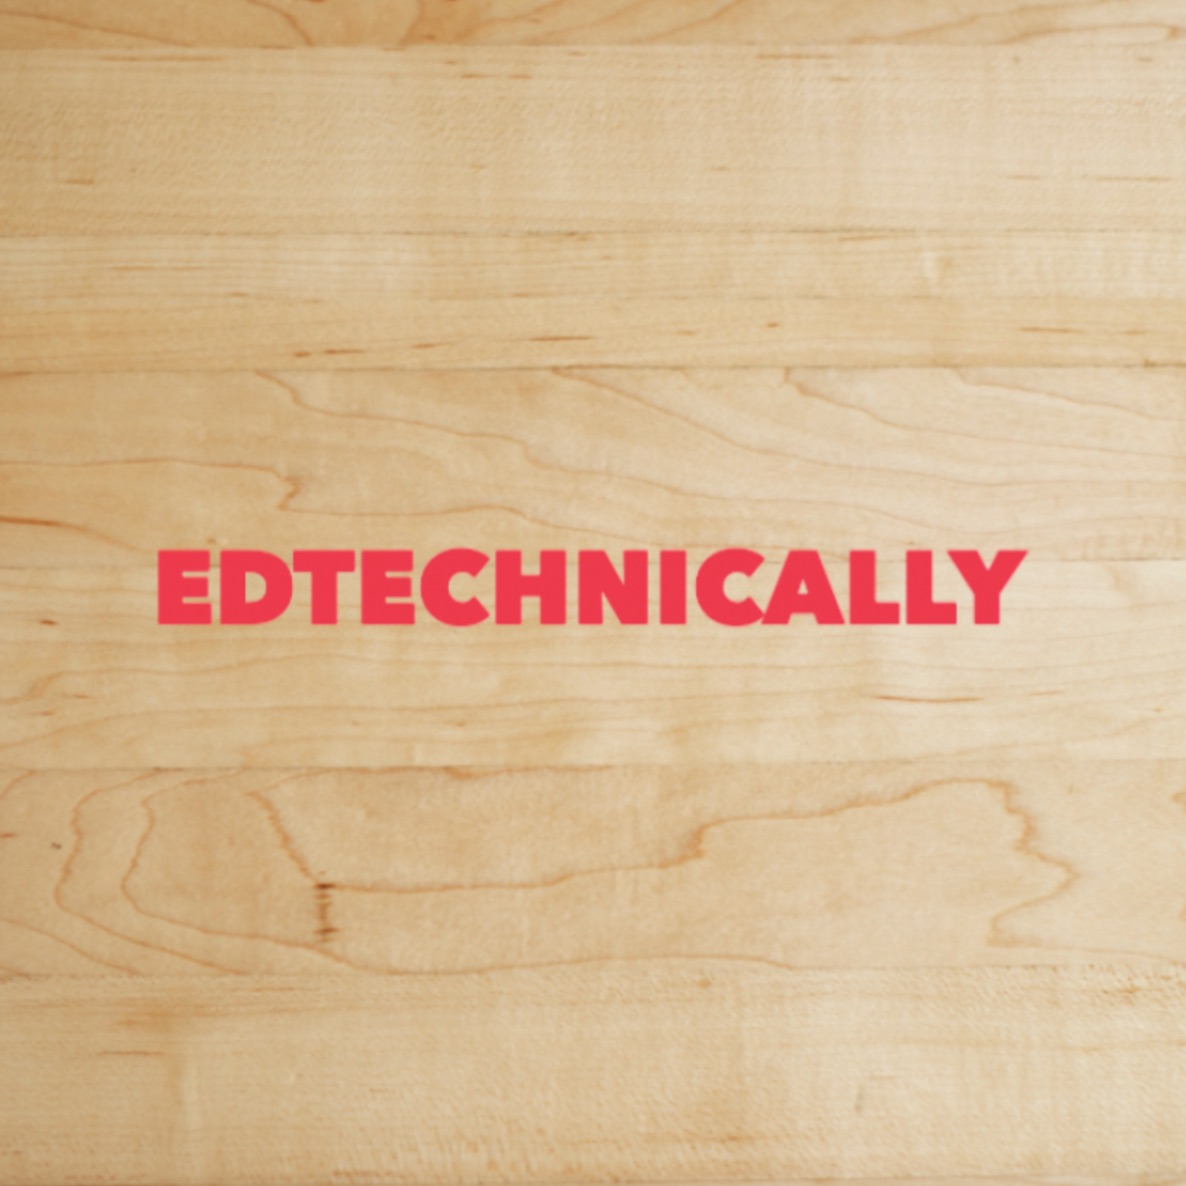 Education and EdTech in the 2010s: A Lost Decade or a Period of Progress?